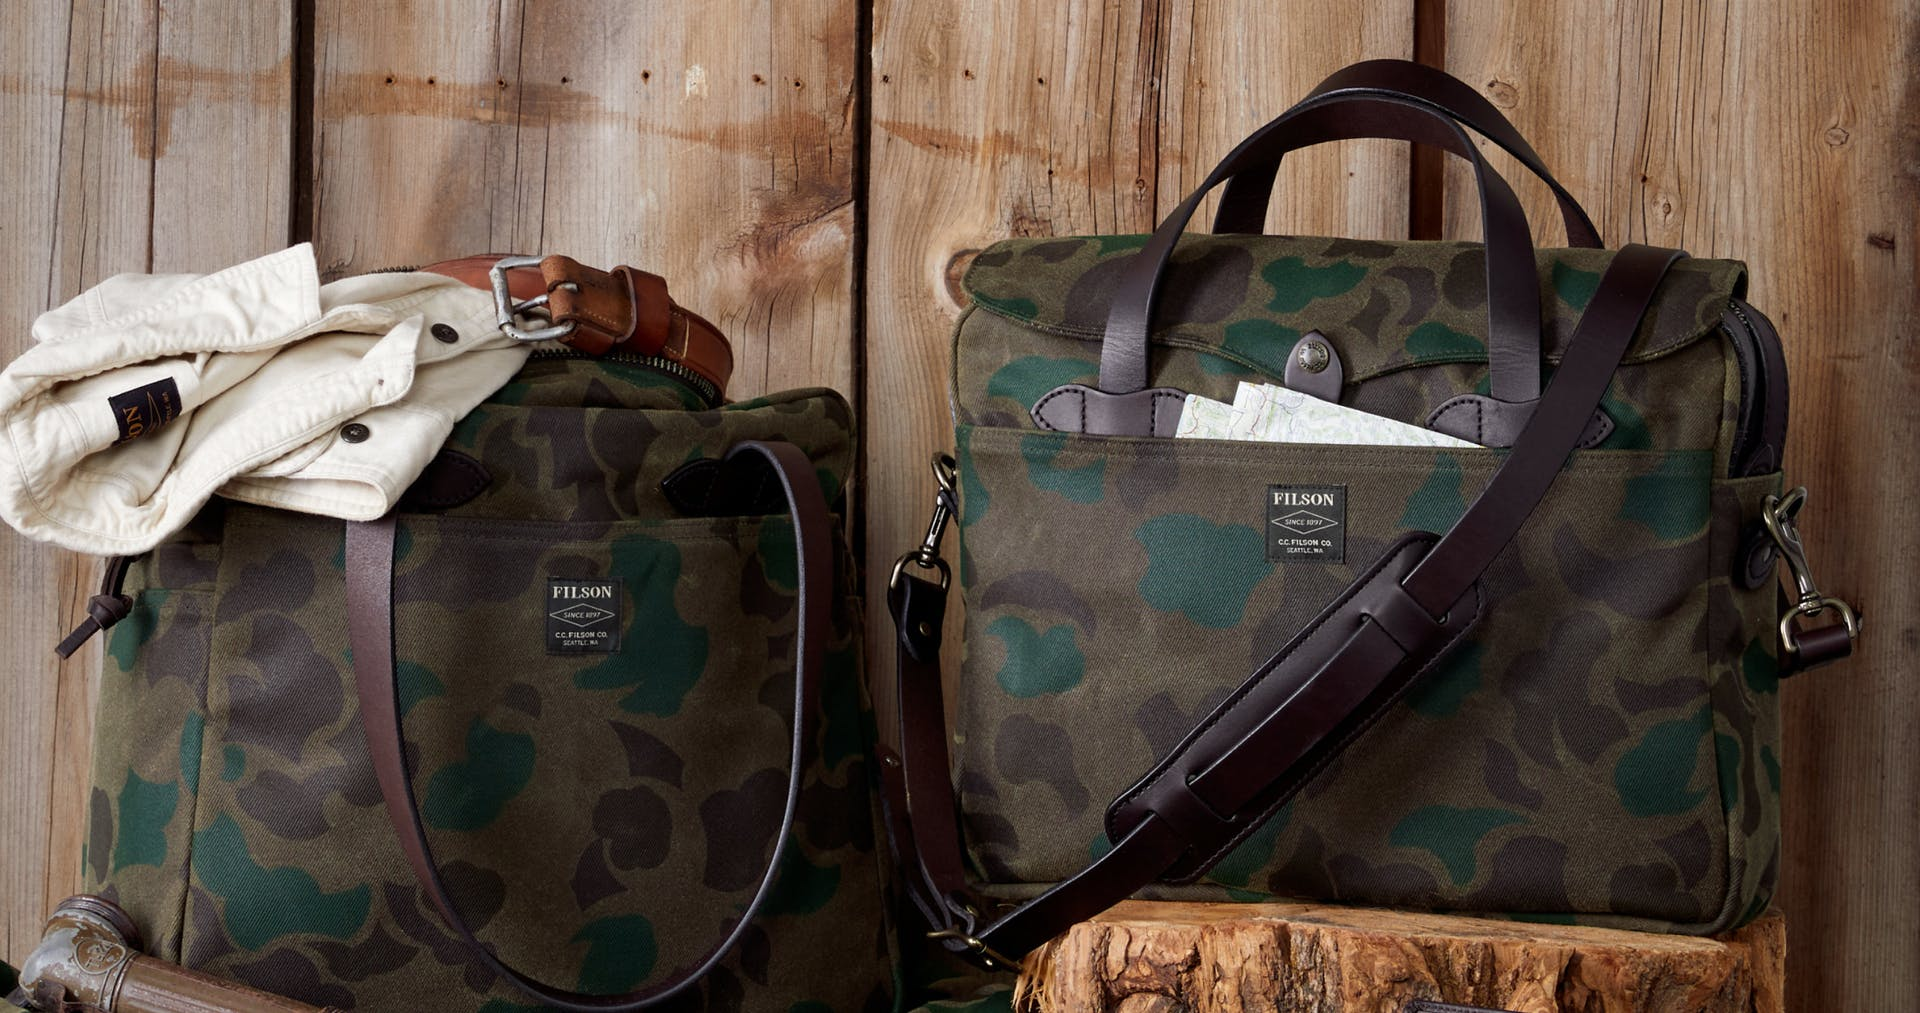 Waxed Rugged Twill Bags/Only 200 Made/Upping The Game/Shop Limited Edition Twill